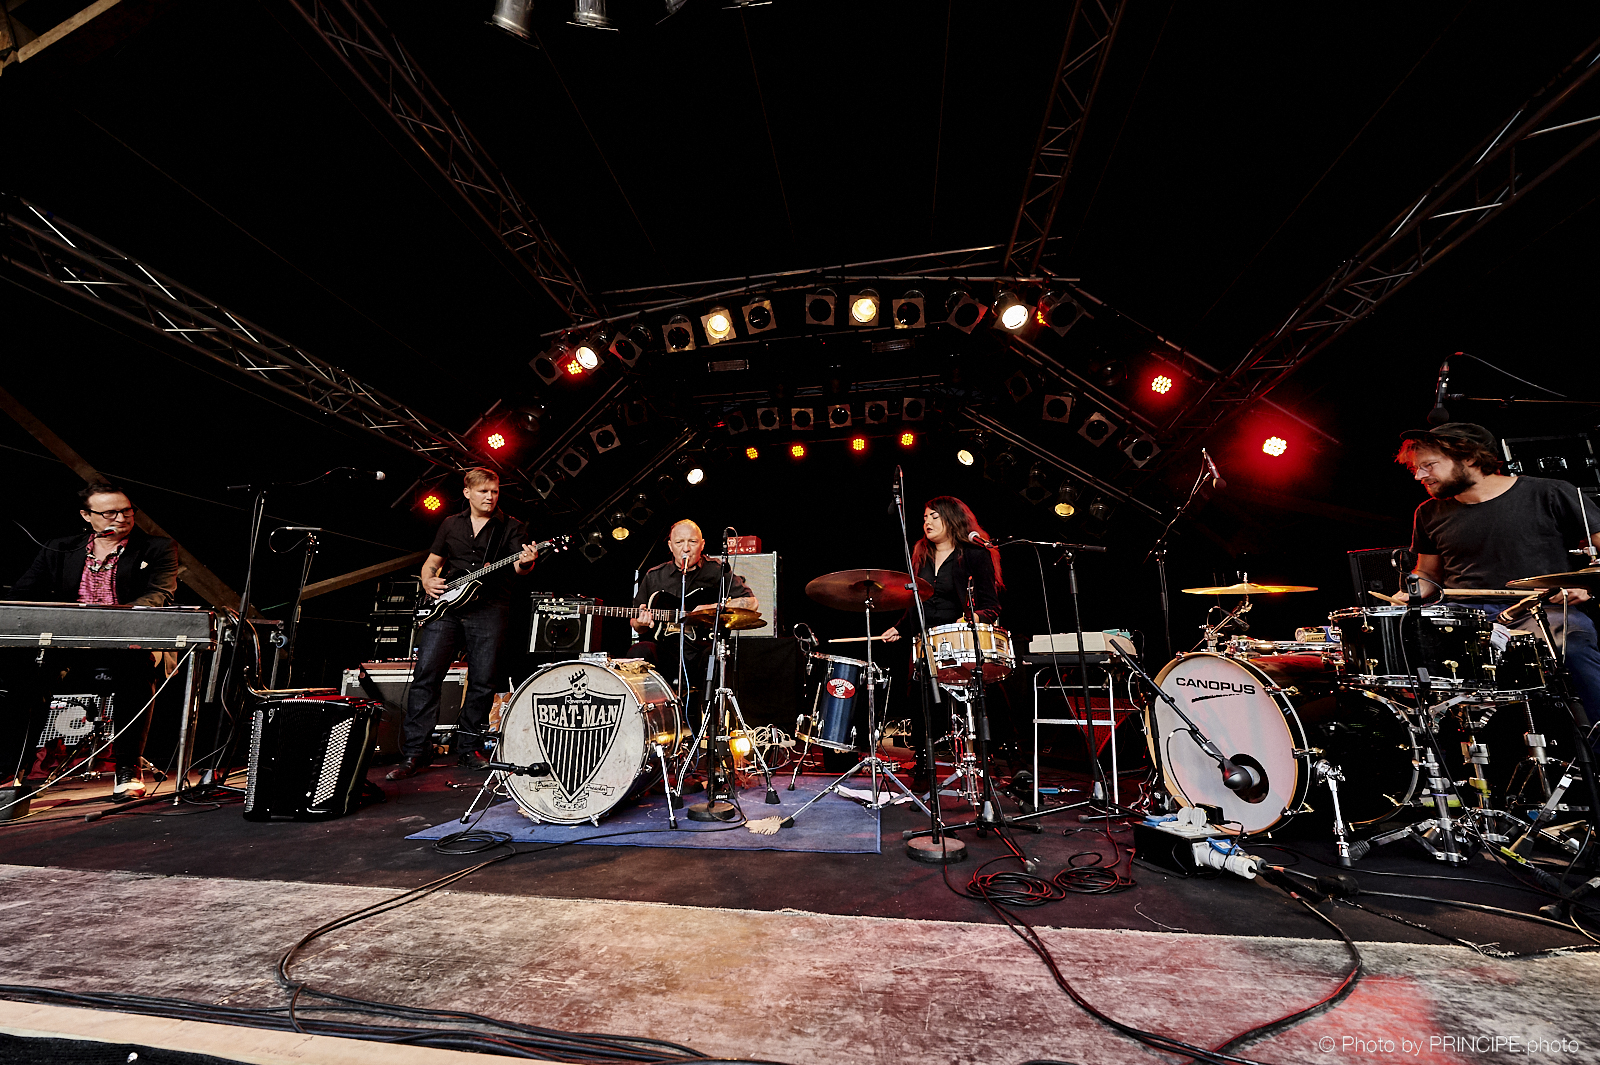 Reverend Beat-Man & the New Wave @ B-Sides Festival